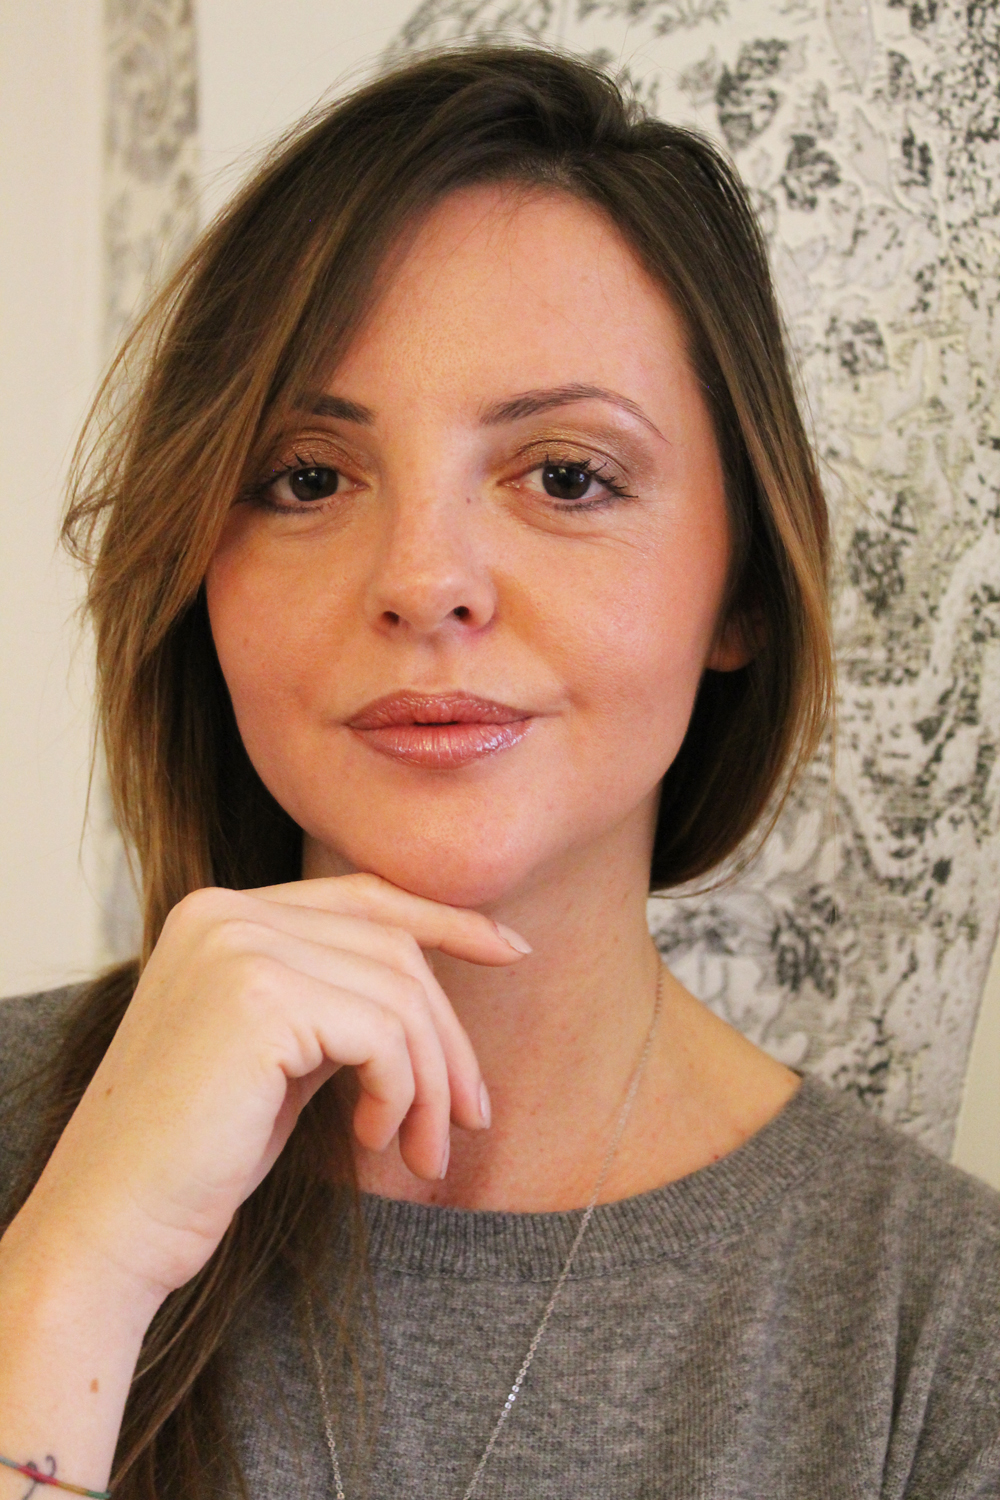 Francesca Focarini beauty blogger italiana